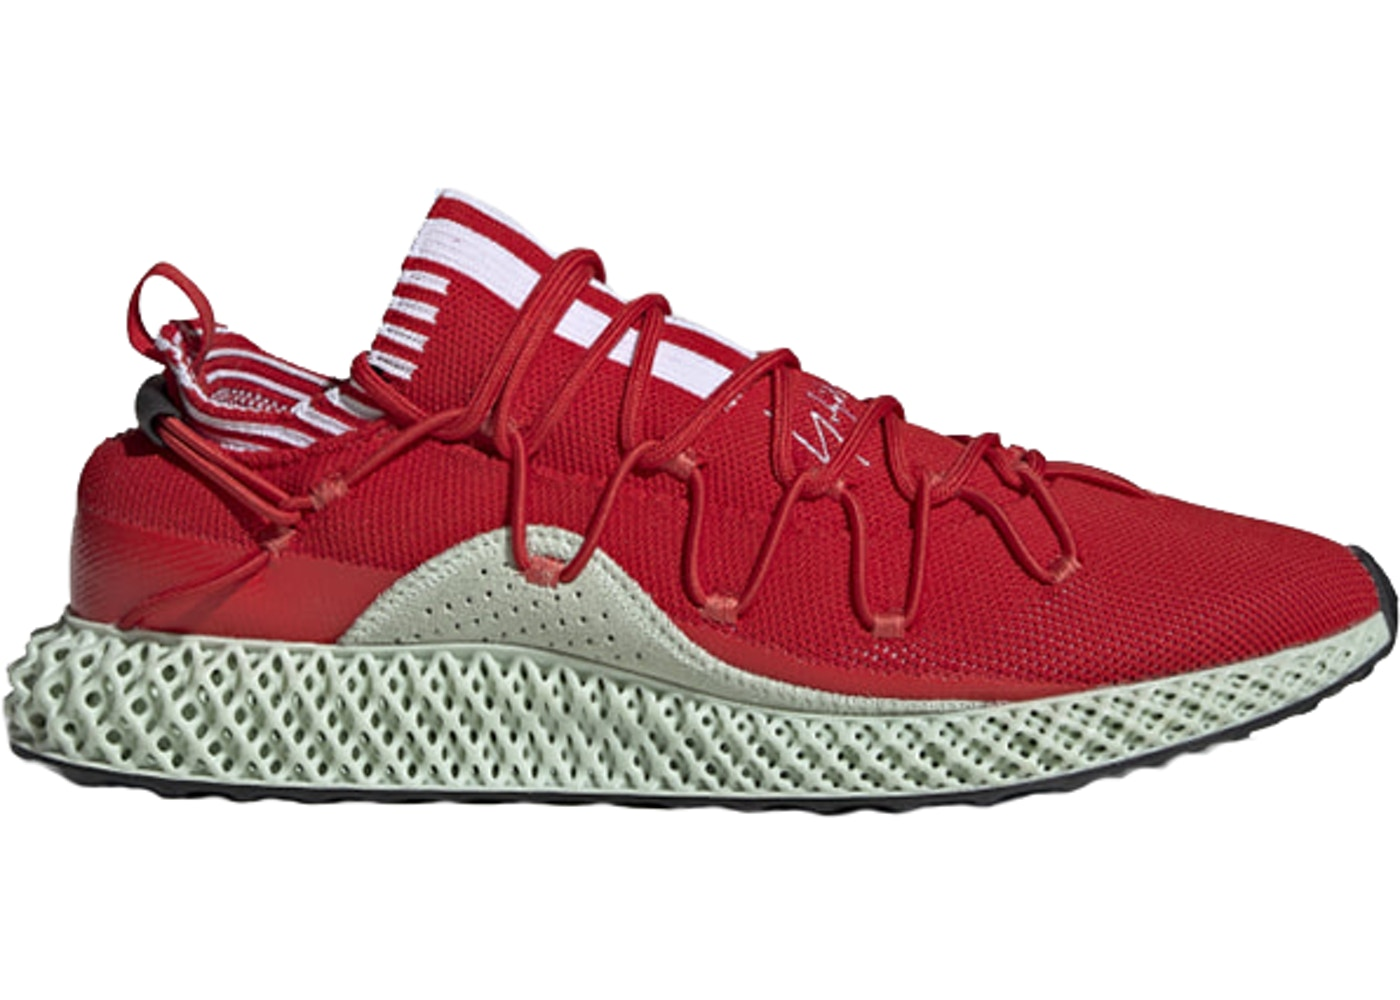 new arrivals 936f3 2cad7 adidas Y3 Runner 4D Red